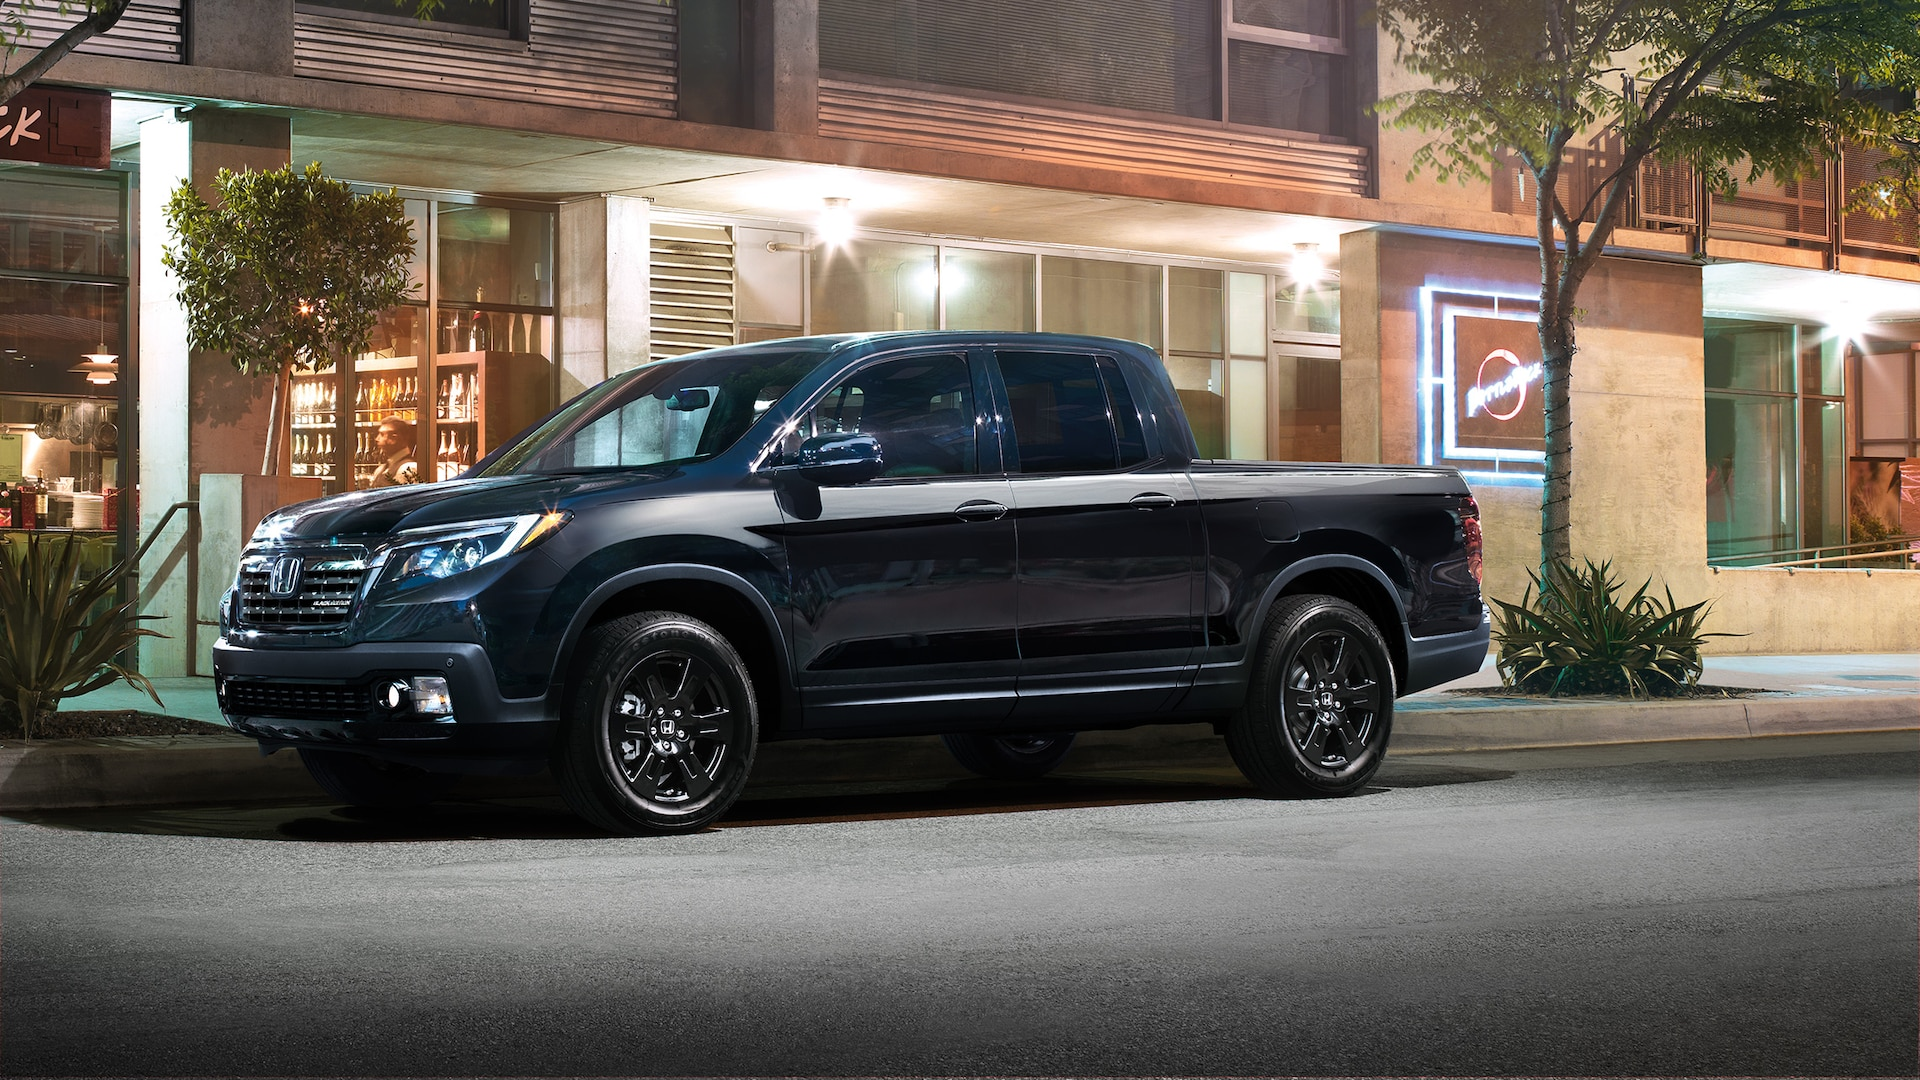 Driver-side view of the 2020 Honda Ridgeline Black Edition in Crystal Black Pearl parked in front of restaurant.